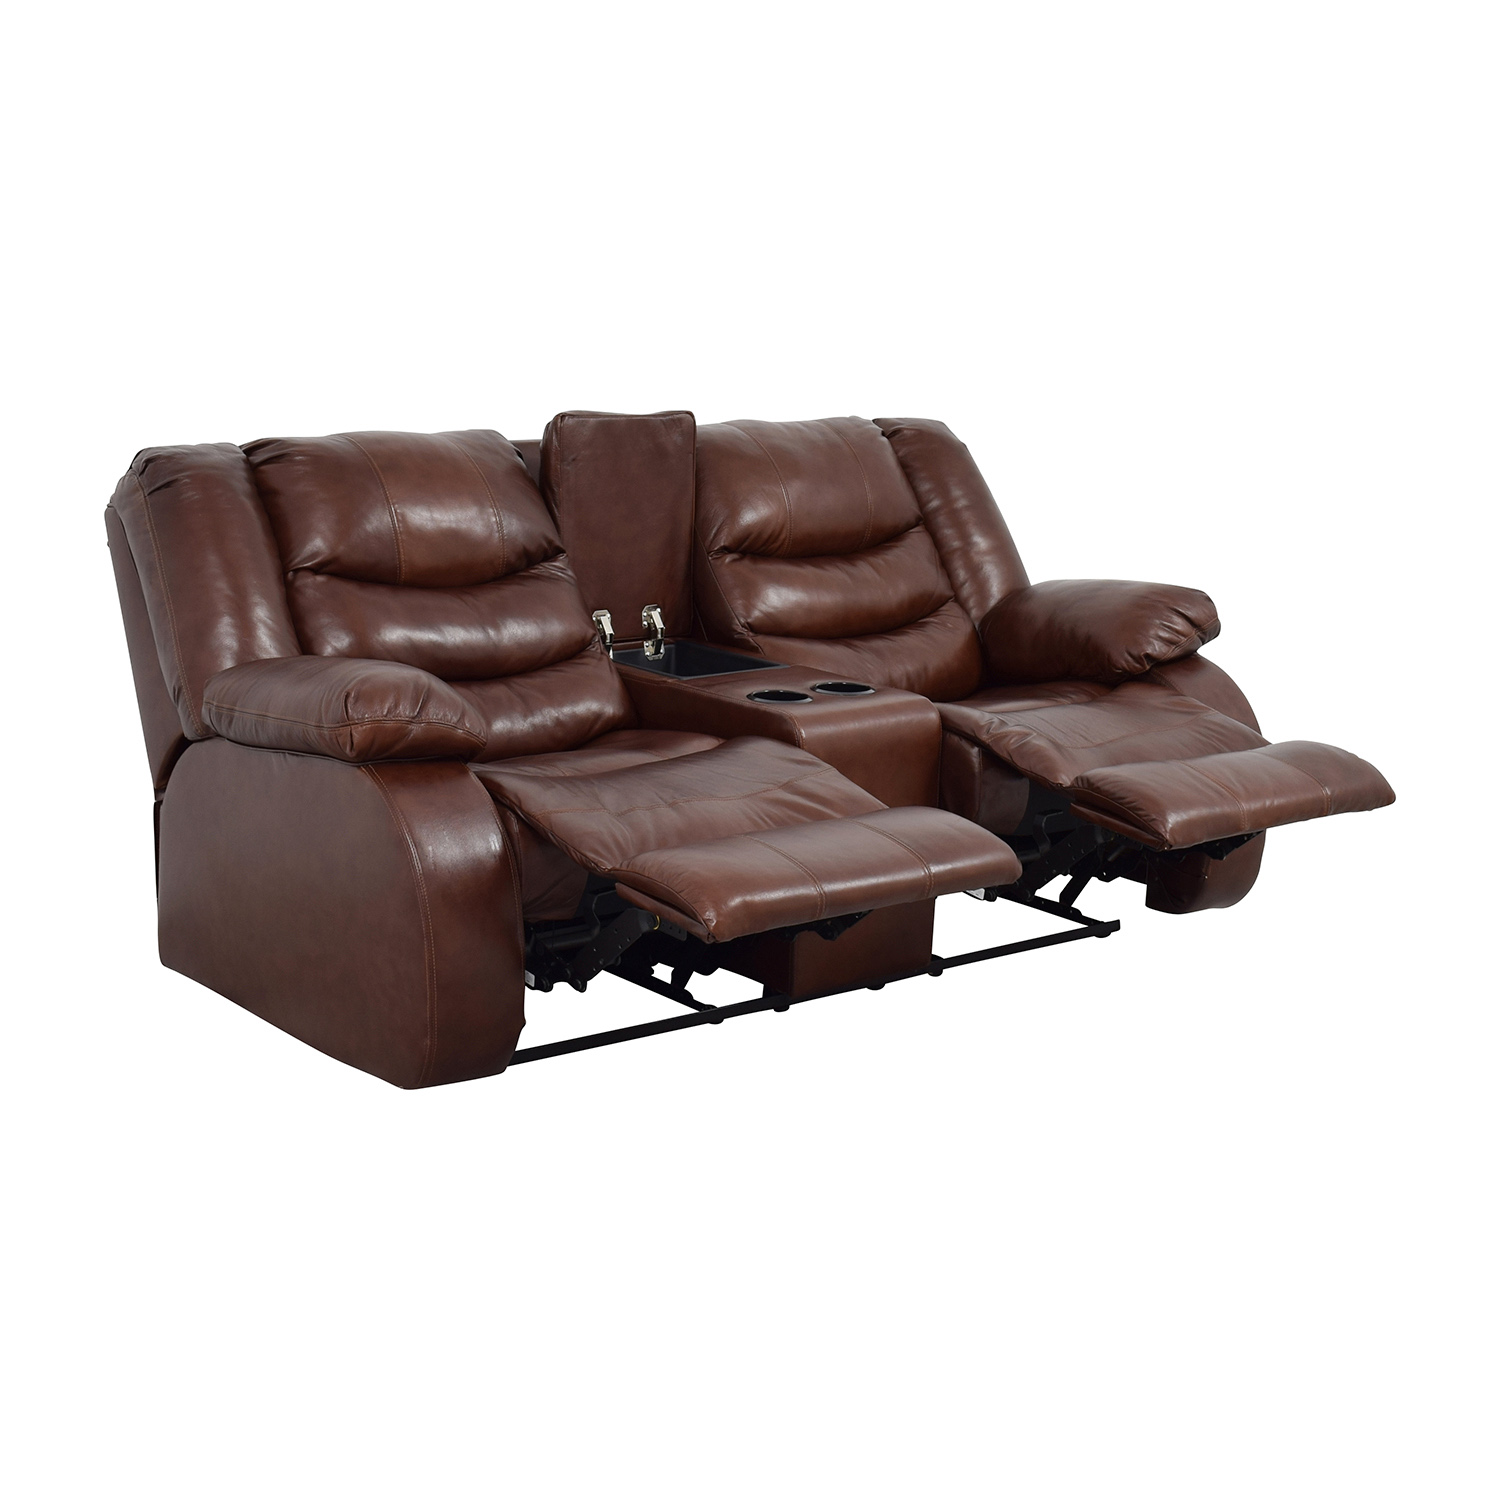 ashley furniture leather sofa recliners corduroy sectional canada 90 off brown